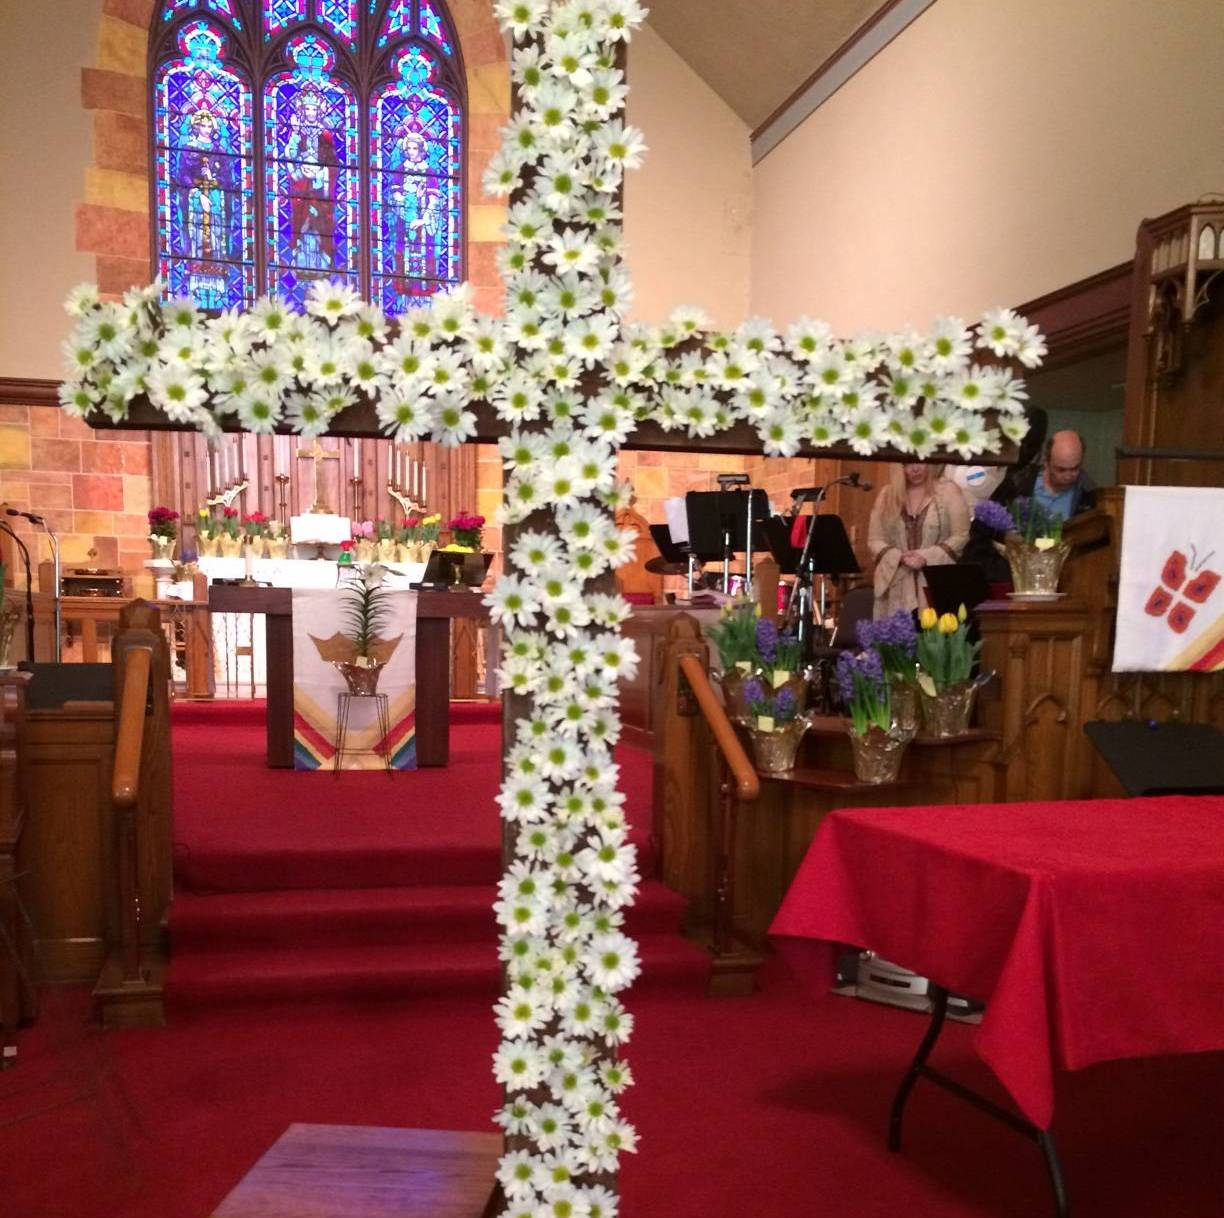 images/stories/HeaderImages/Frame2/easter cross.jpg